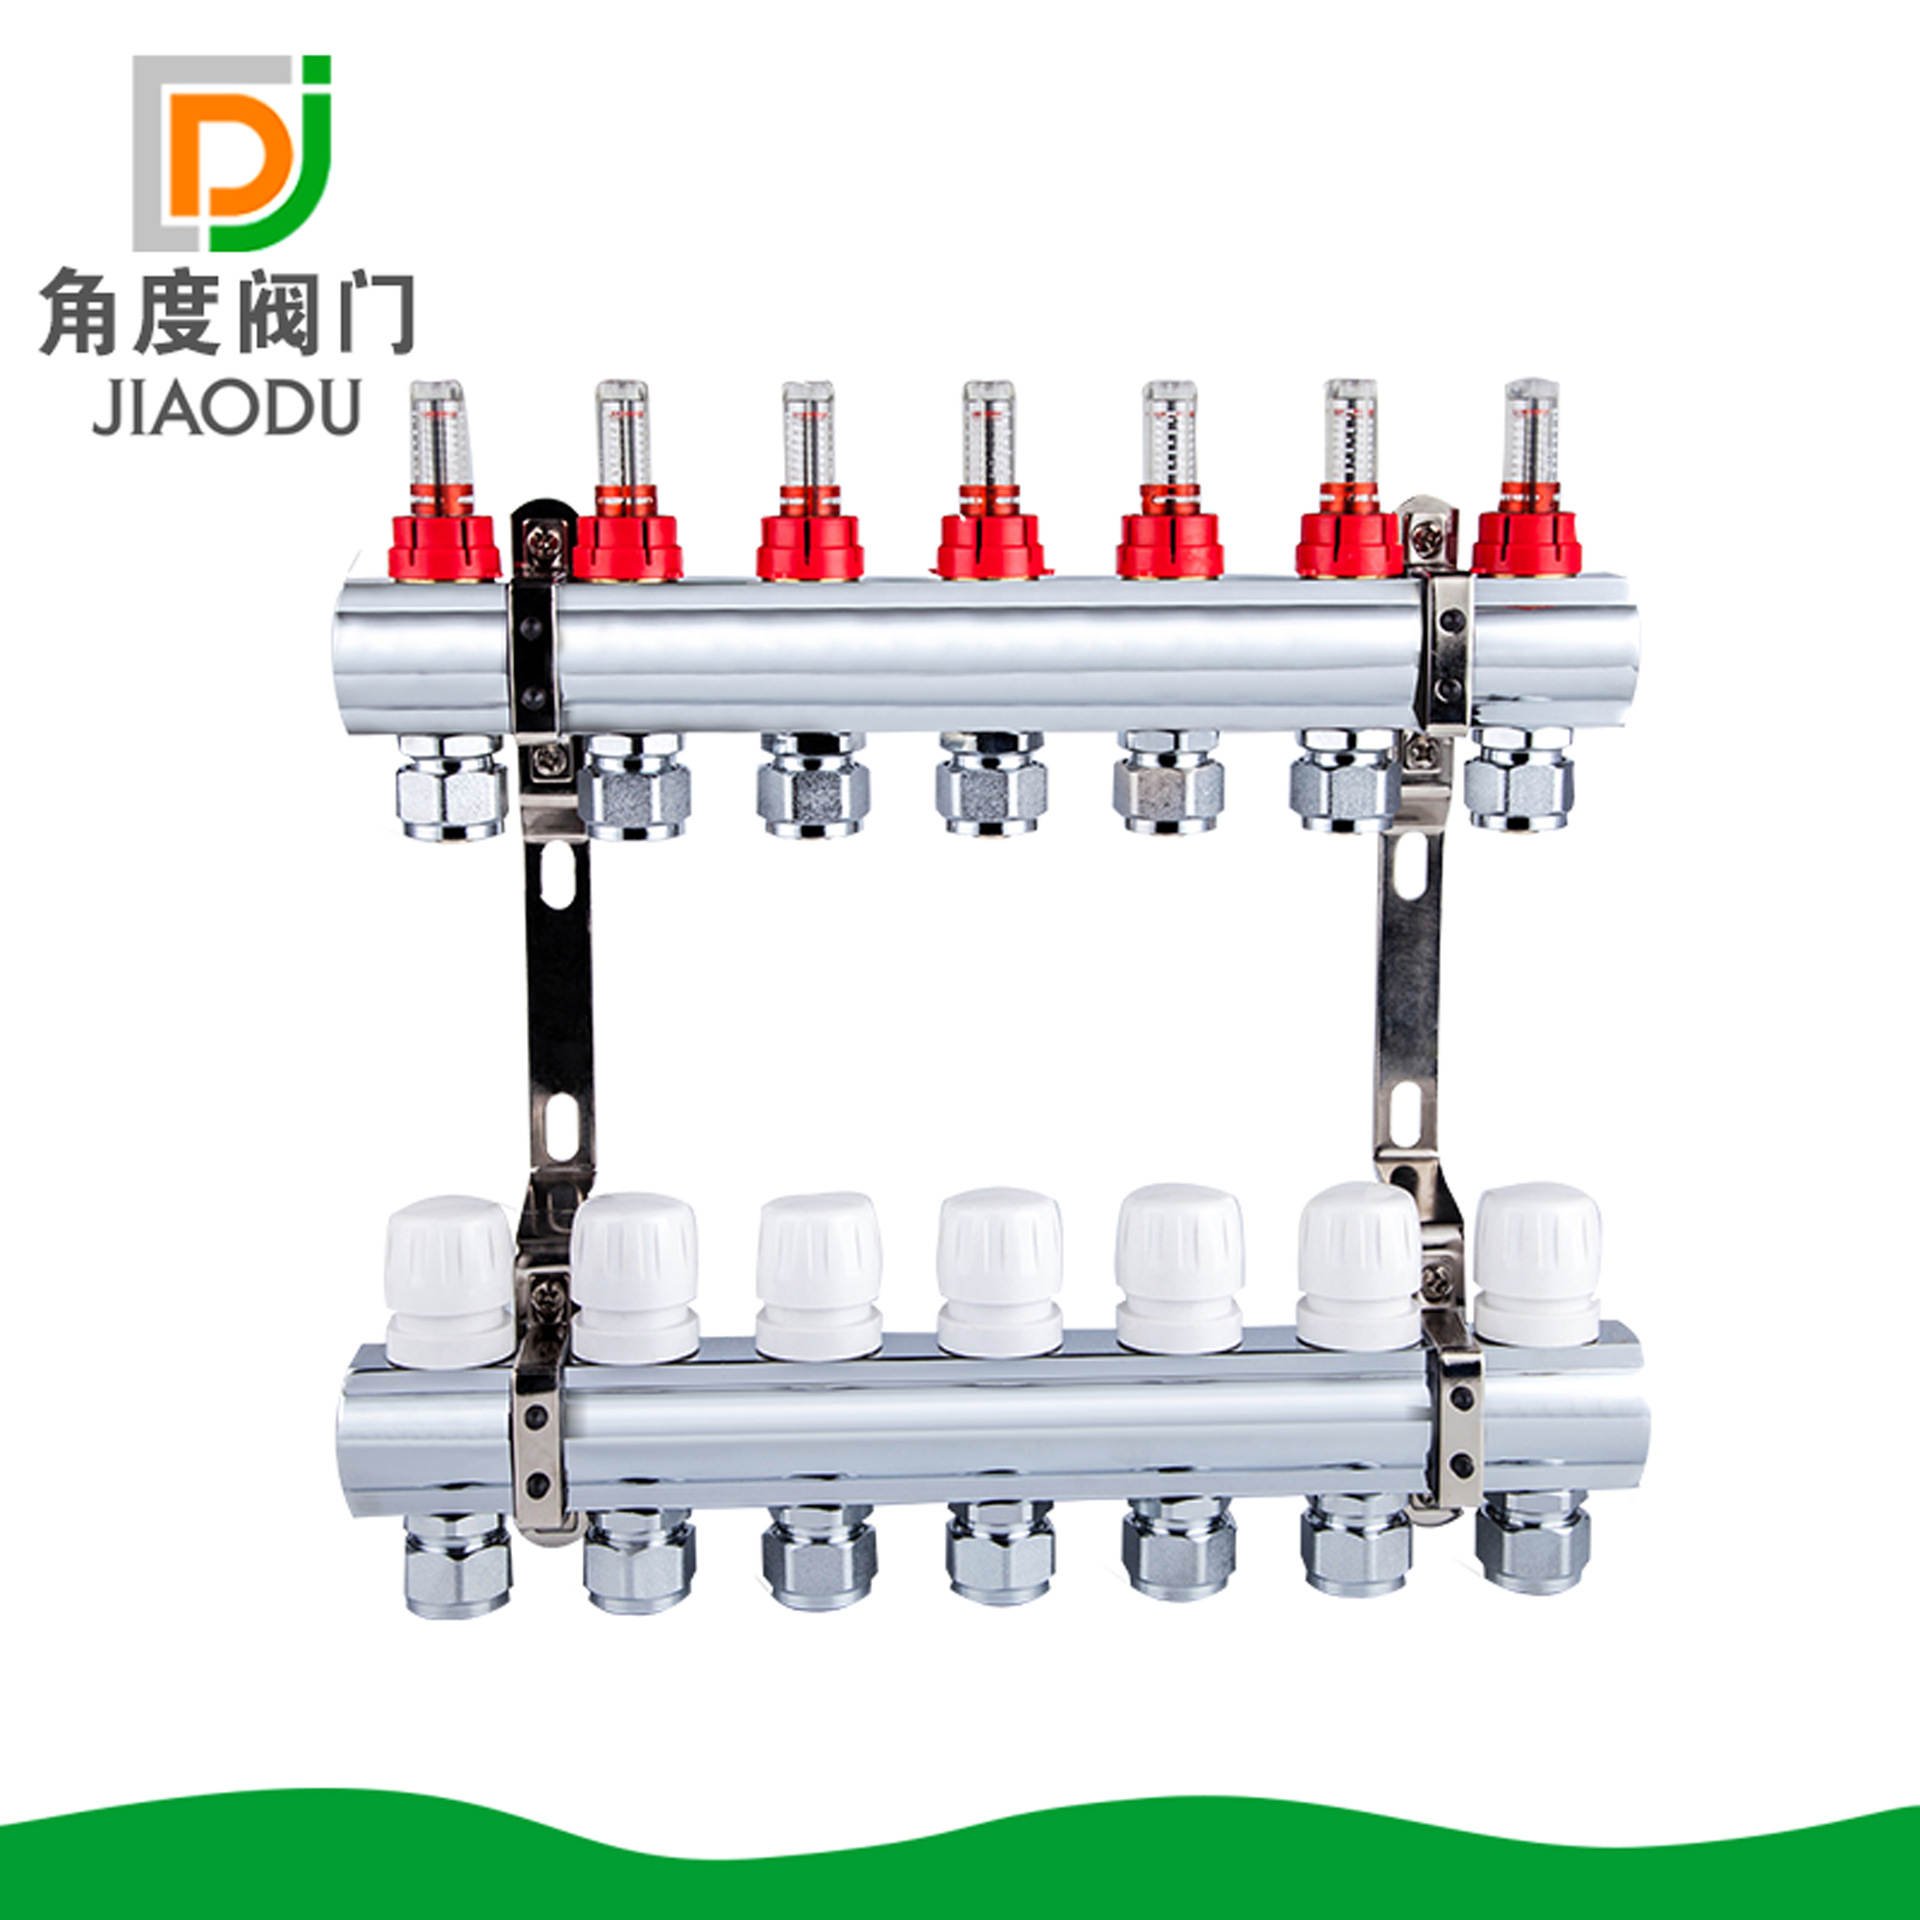 Customize 2-8 Ways DN25 Household Water Separator, Home Visual Flow Integrated Floor Heating Water Separator/collector Brass